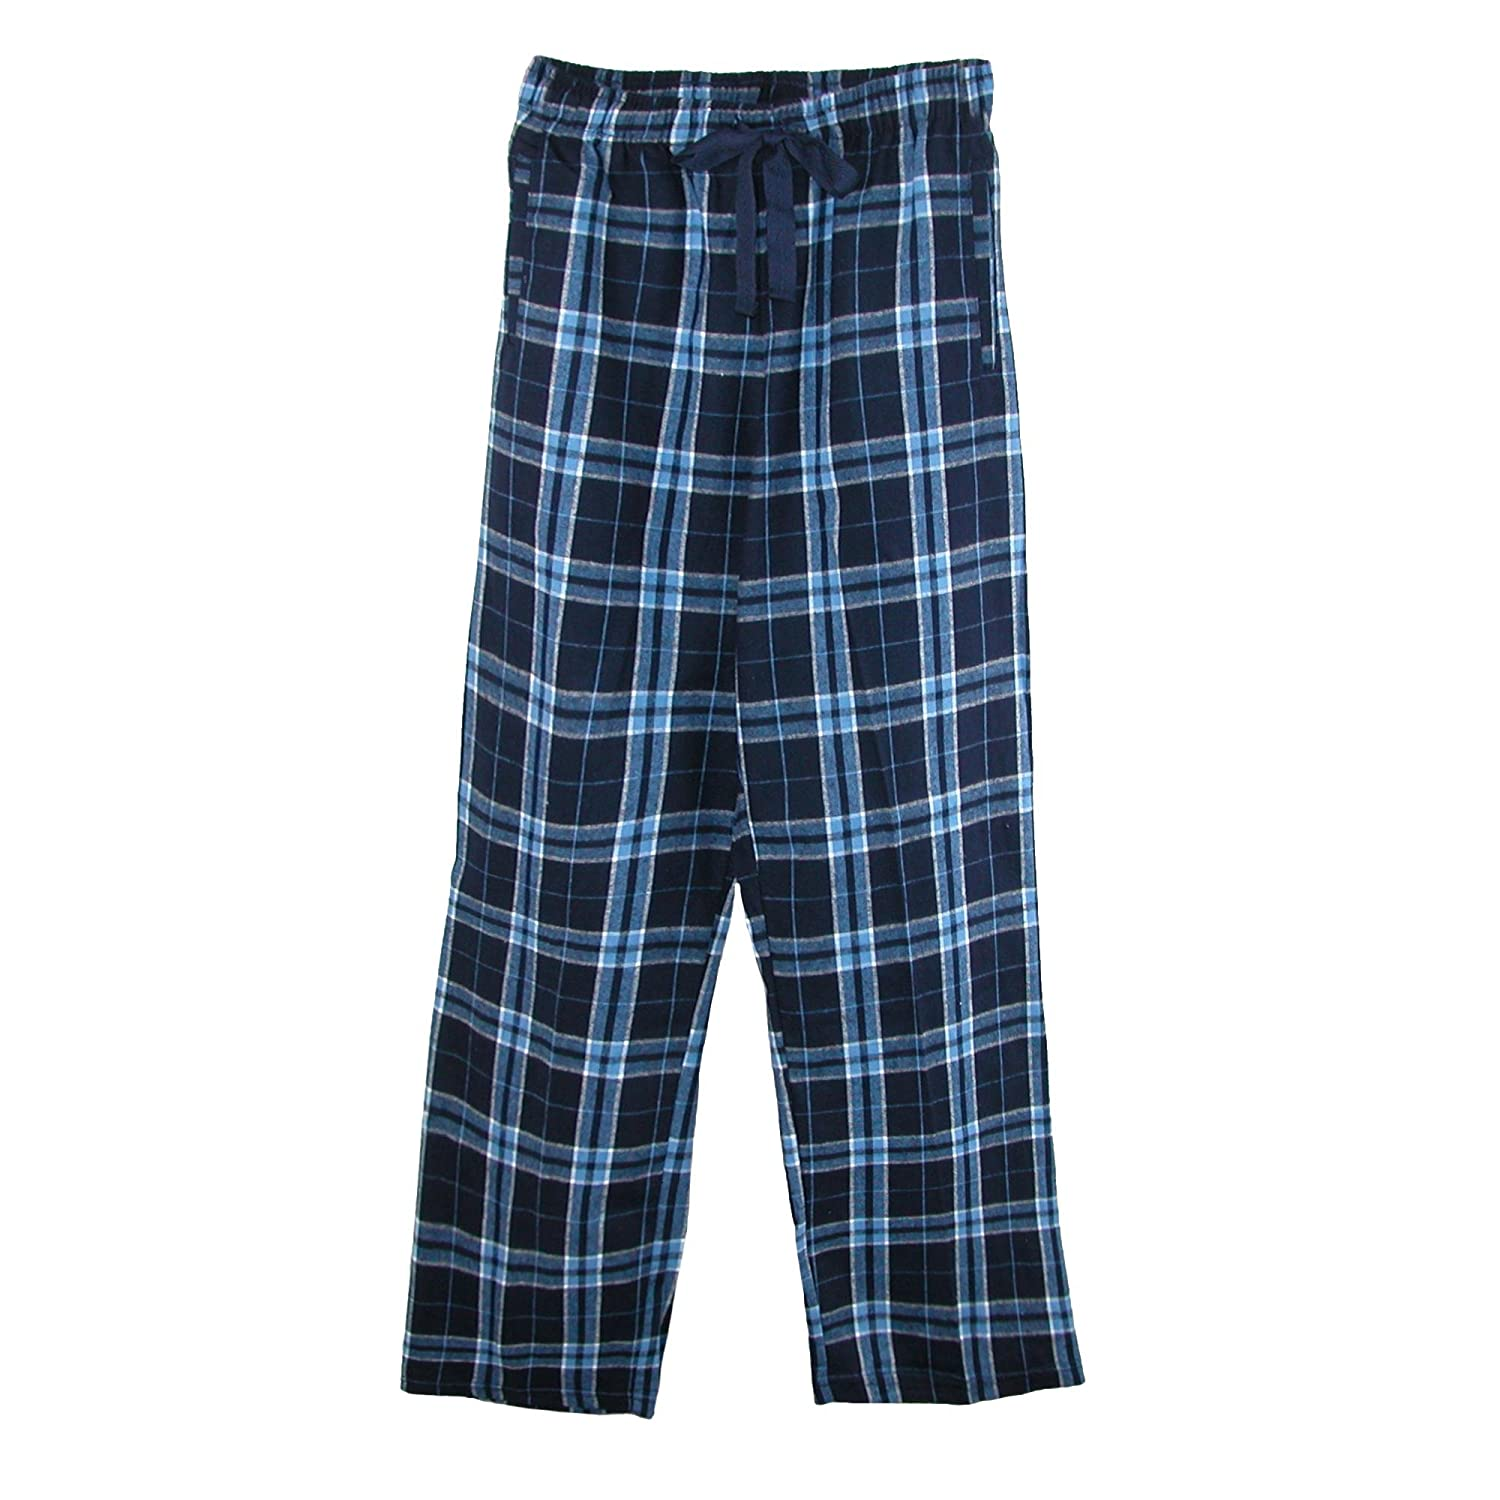 Boxercraft Childrens Flannel Lounge Pants